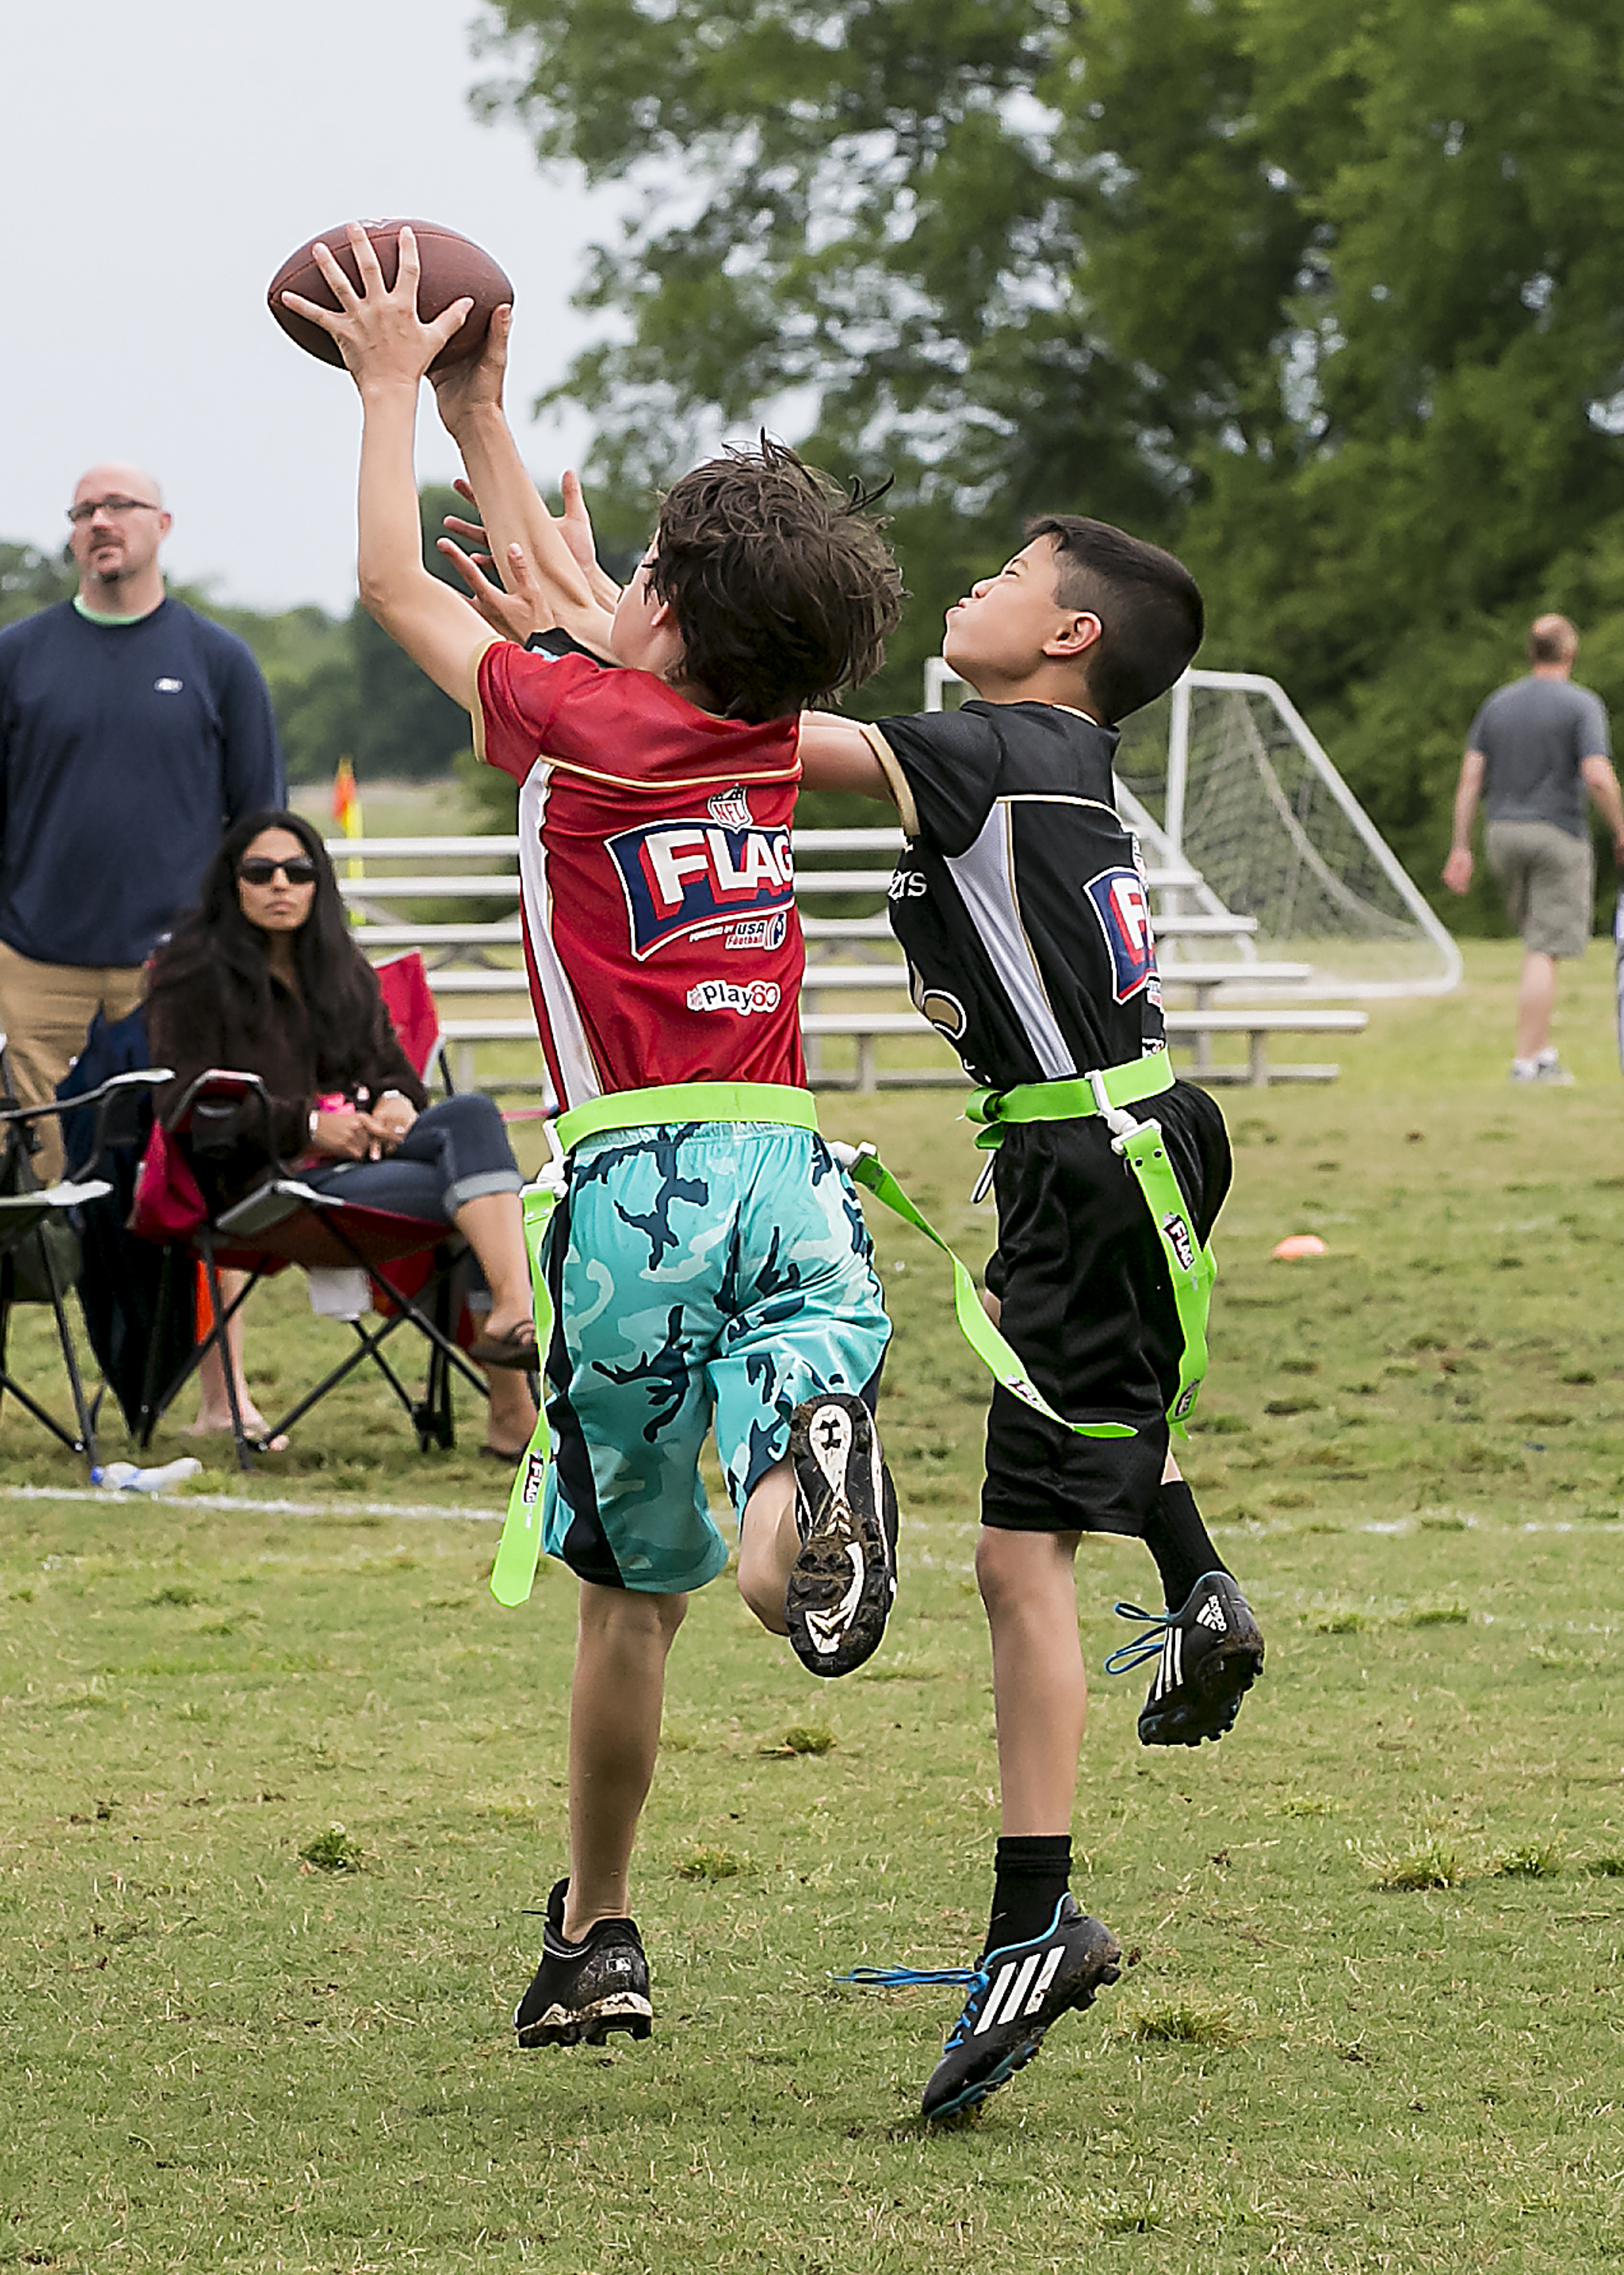 Youth Sports in Murfreesboro are Positive